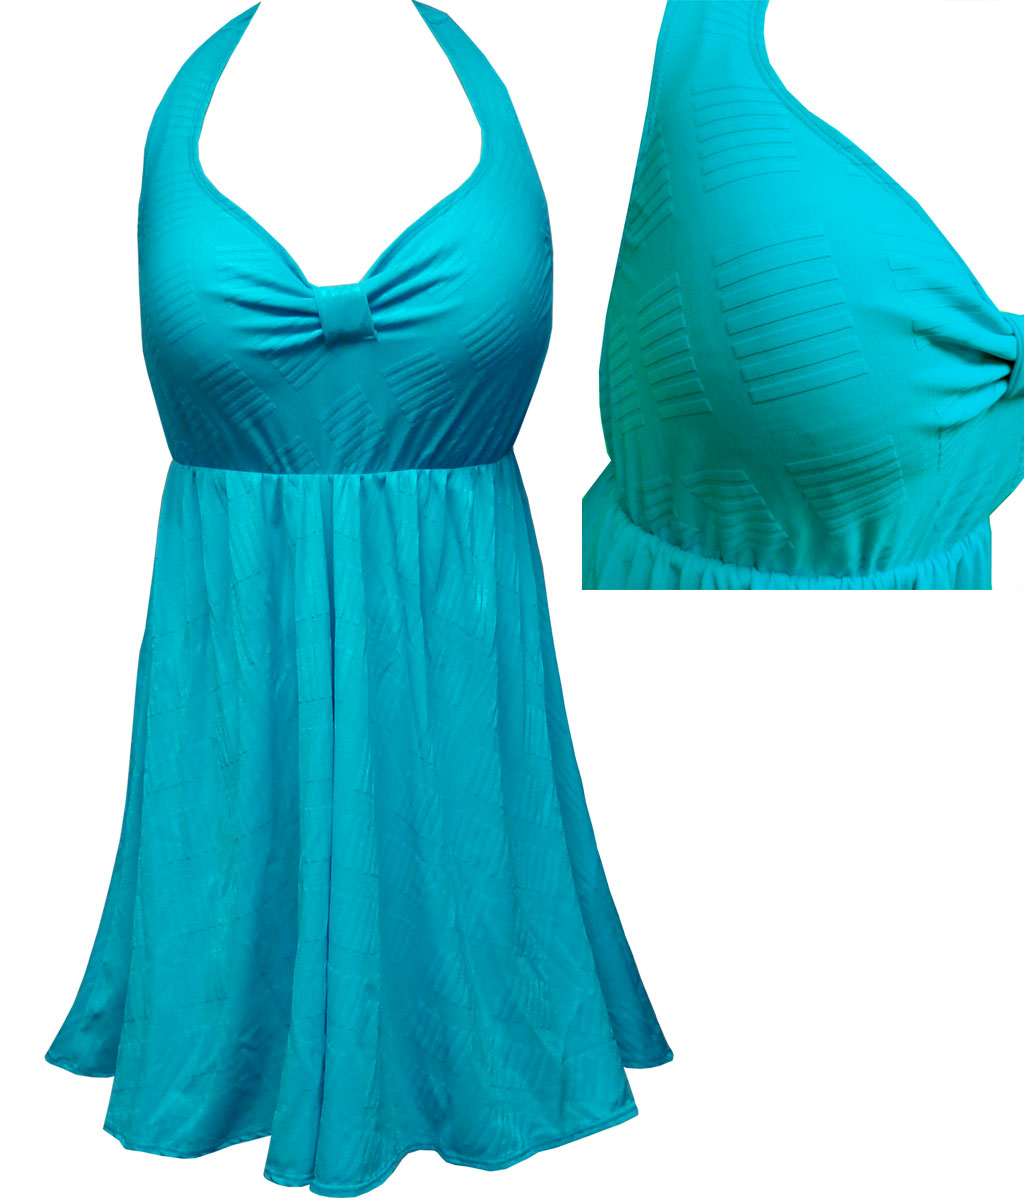 6107e0ce0f Teal With Lines Print Plus Size Halter SwimDress Swimwear Swimsuit 1x